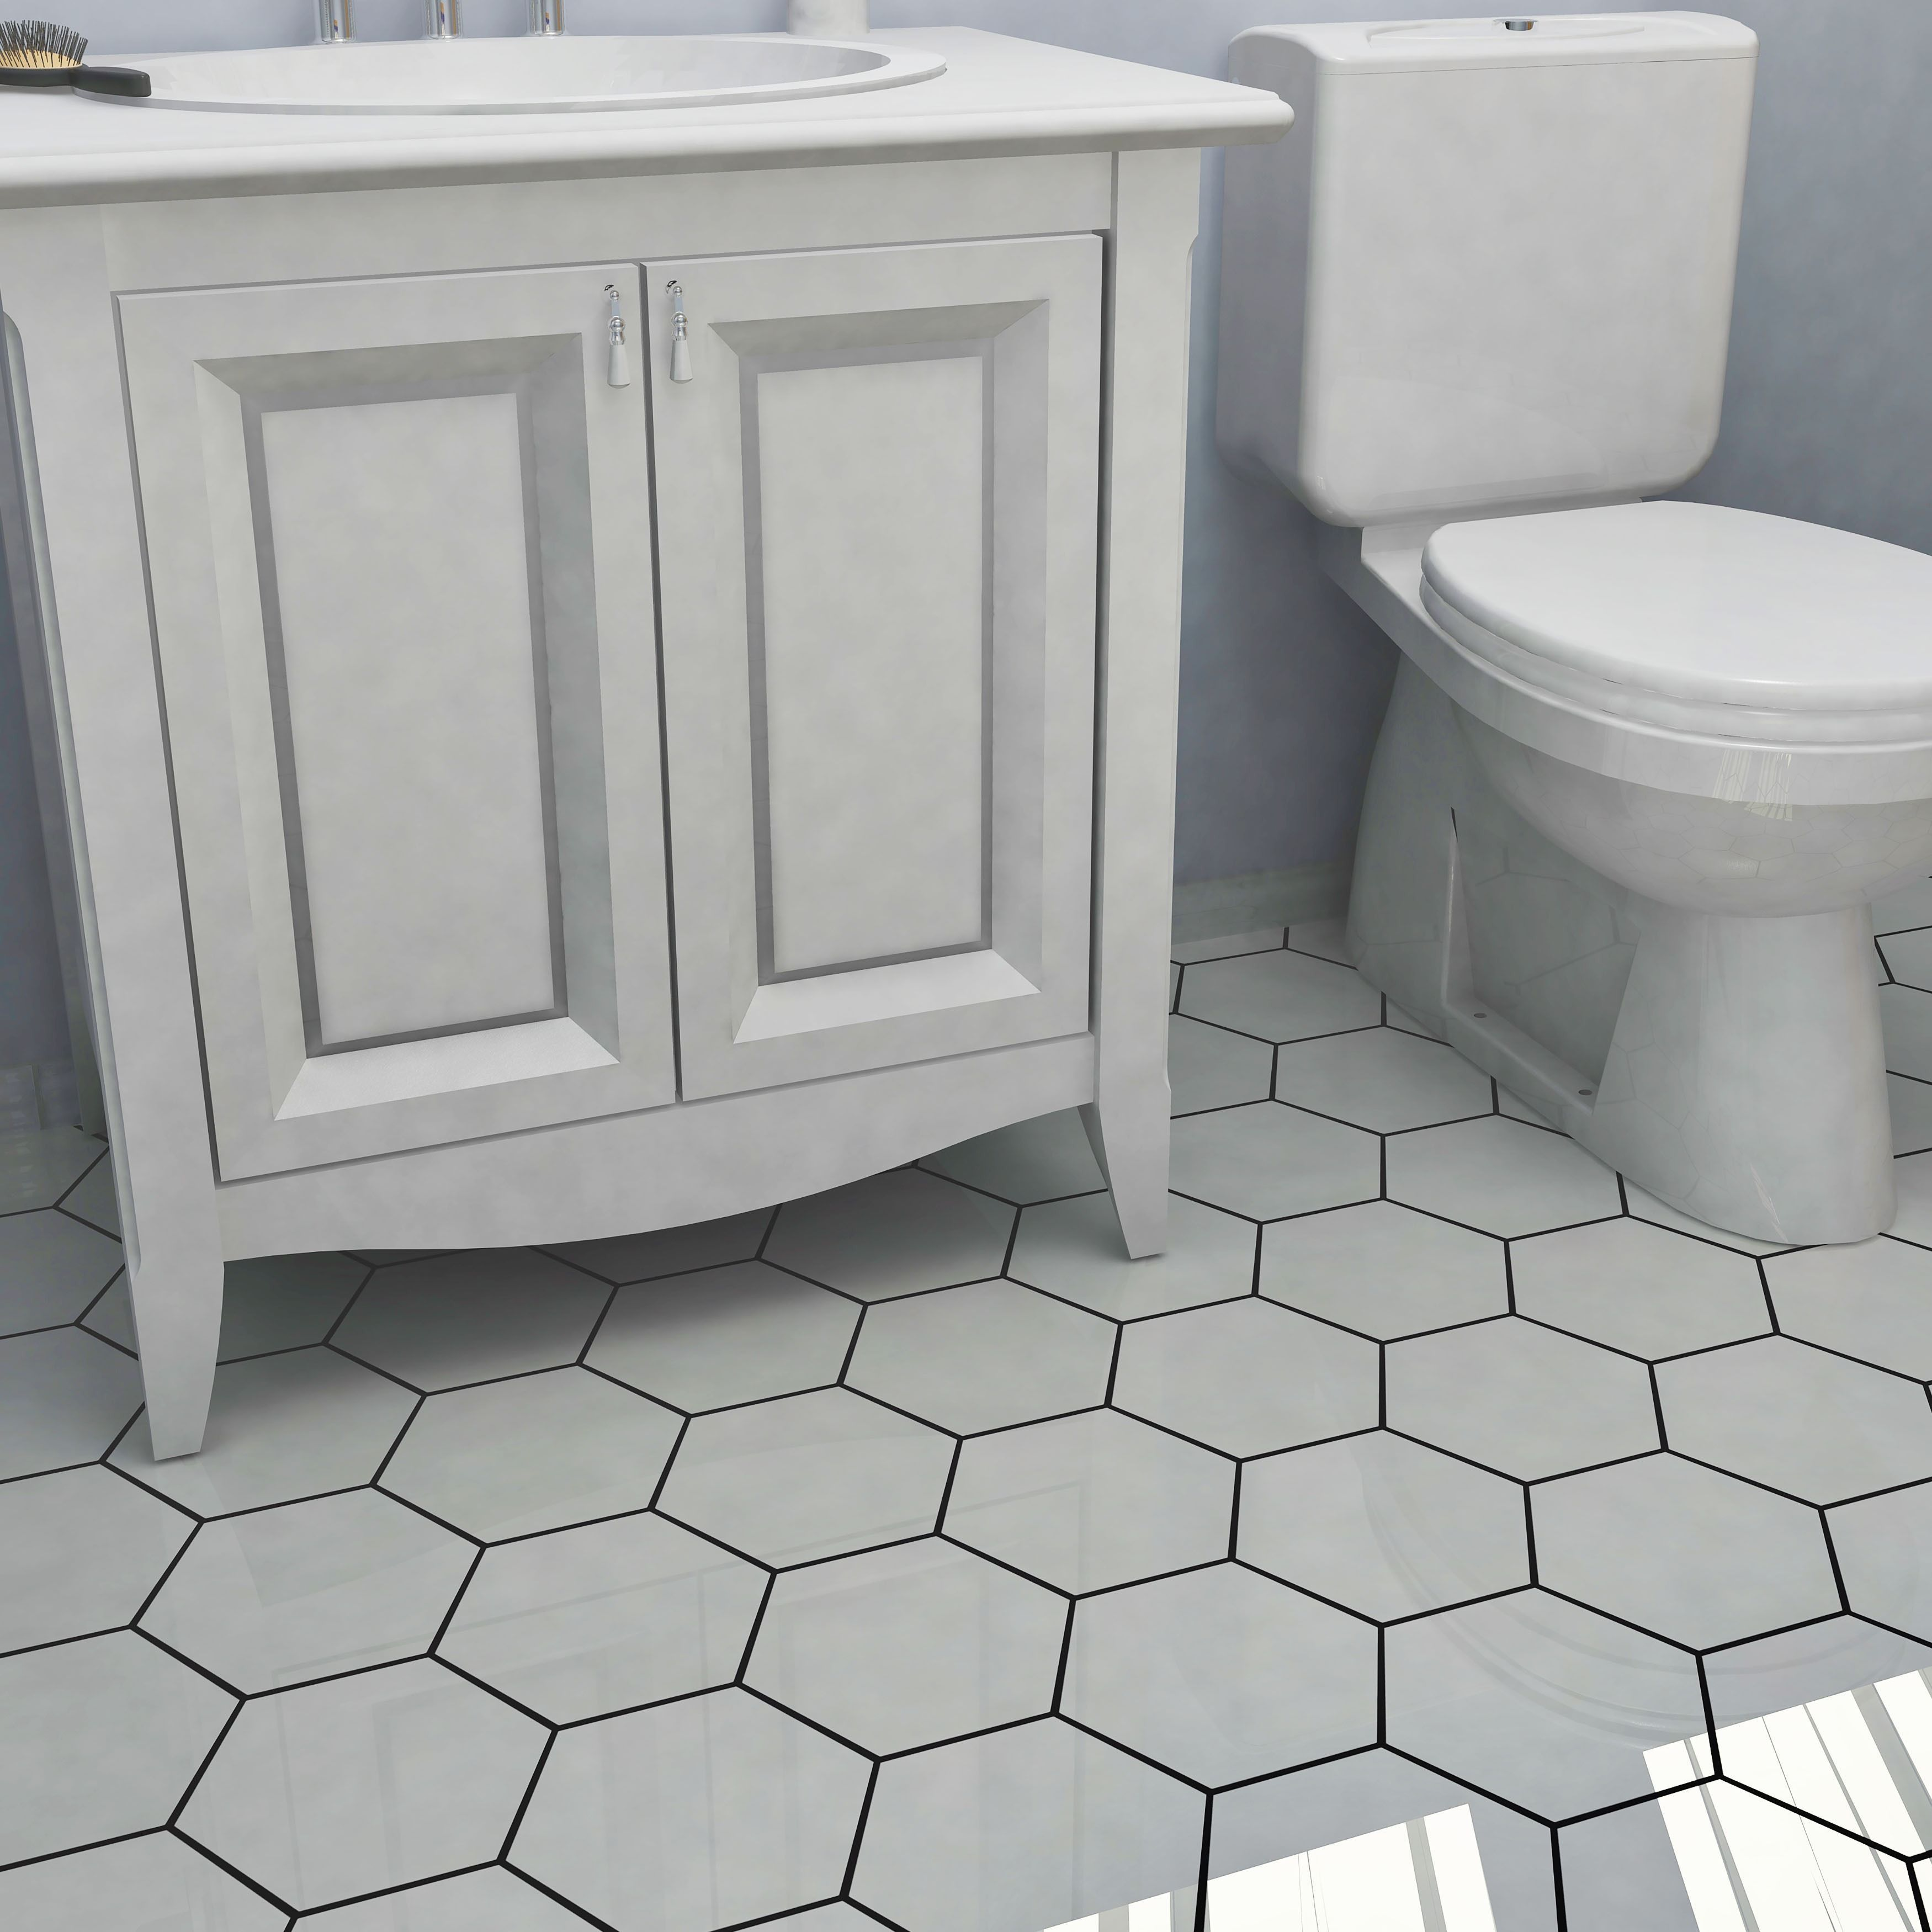 Somertile 7x8 inch hextile matte blanco porcelain floor and wall somertile hextile matte white porcelain floor and wall tile set of 14 hextile dailygadgetfo Image collections